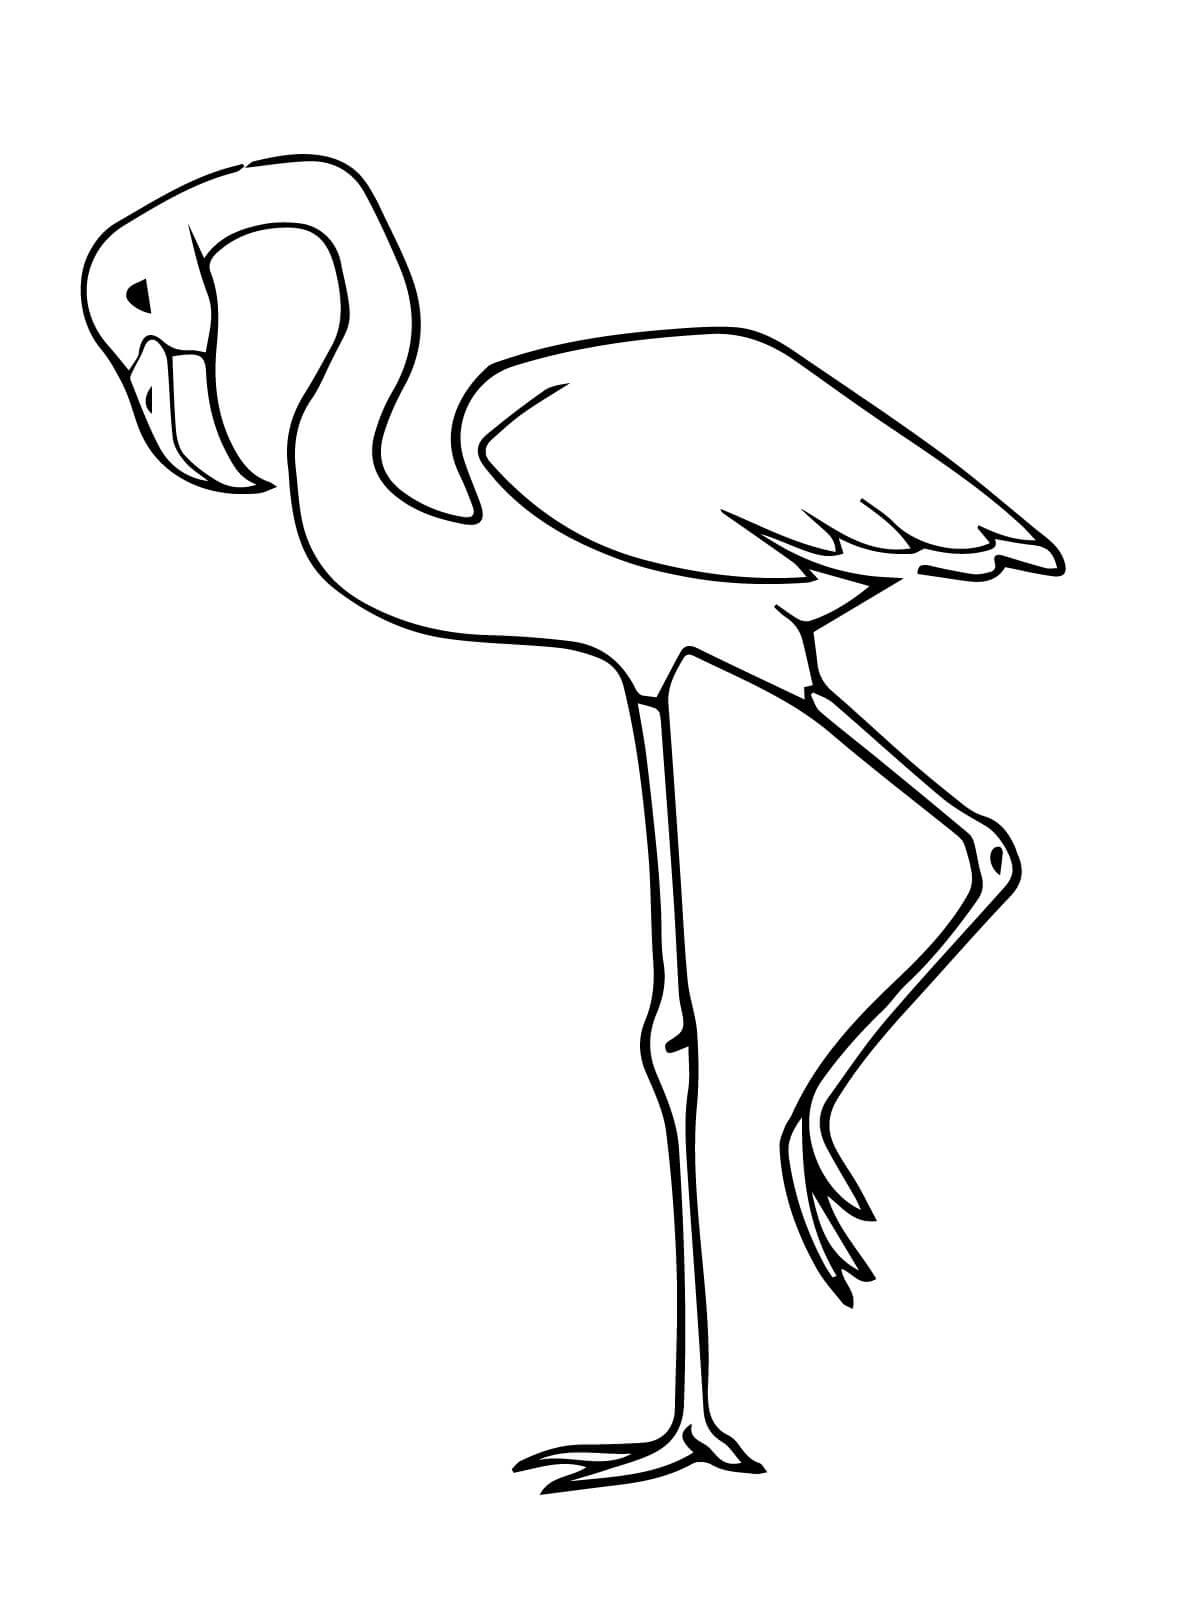 pictures of flamingos to color simple flamingo coloring page free printable coloring to flamingos color pictures of